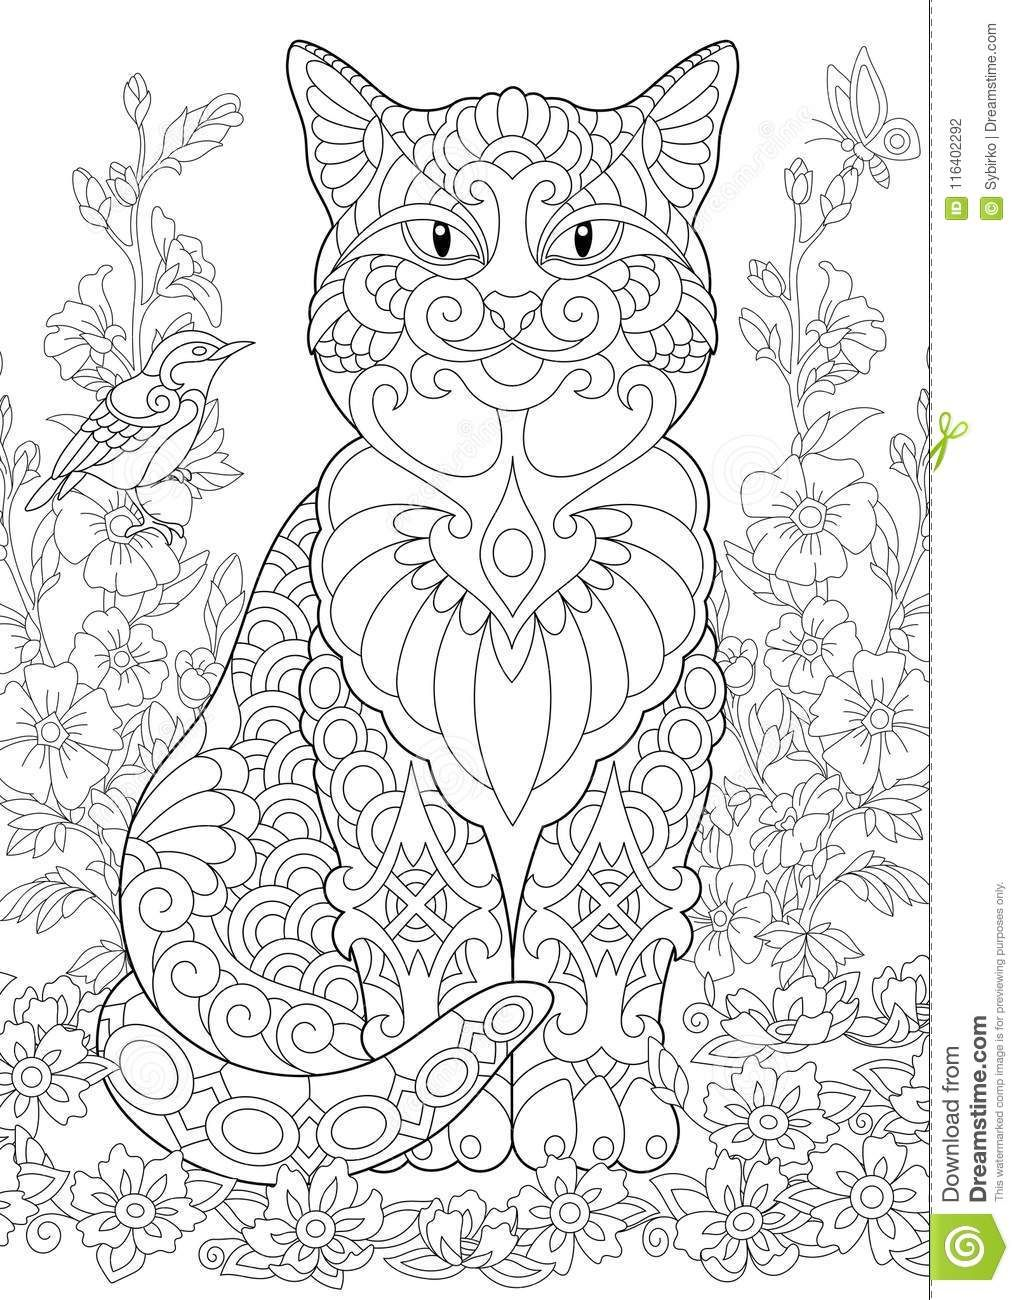 Zentangle spring cat stock vector. Illustration of floral ...